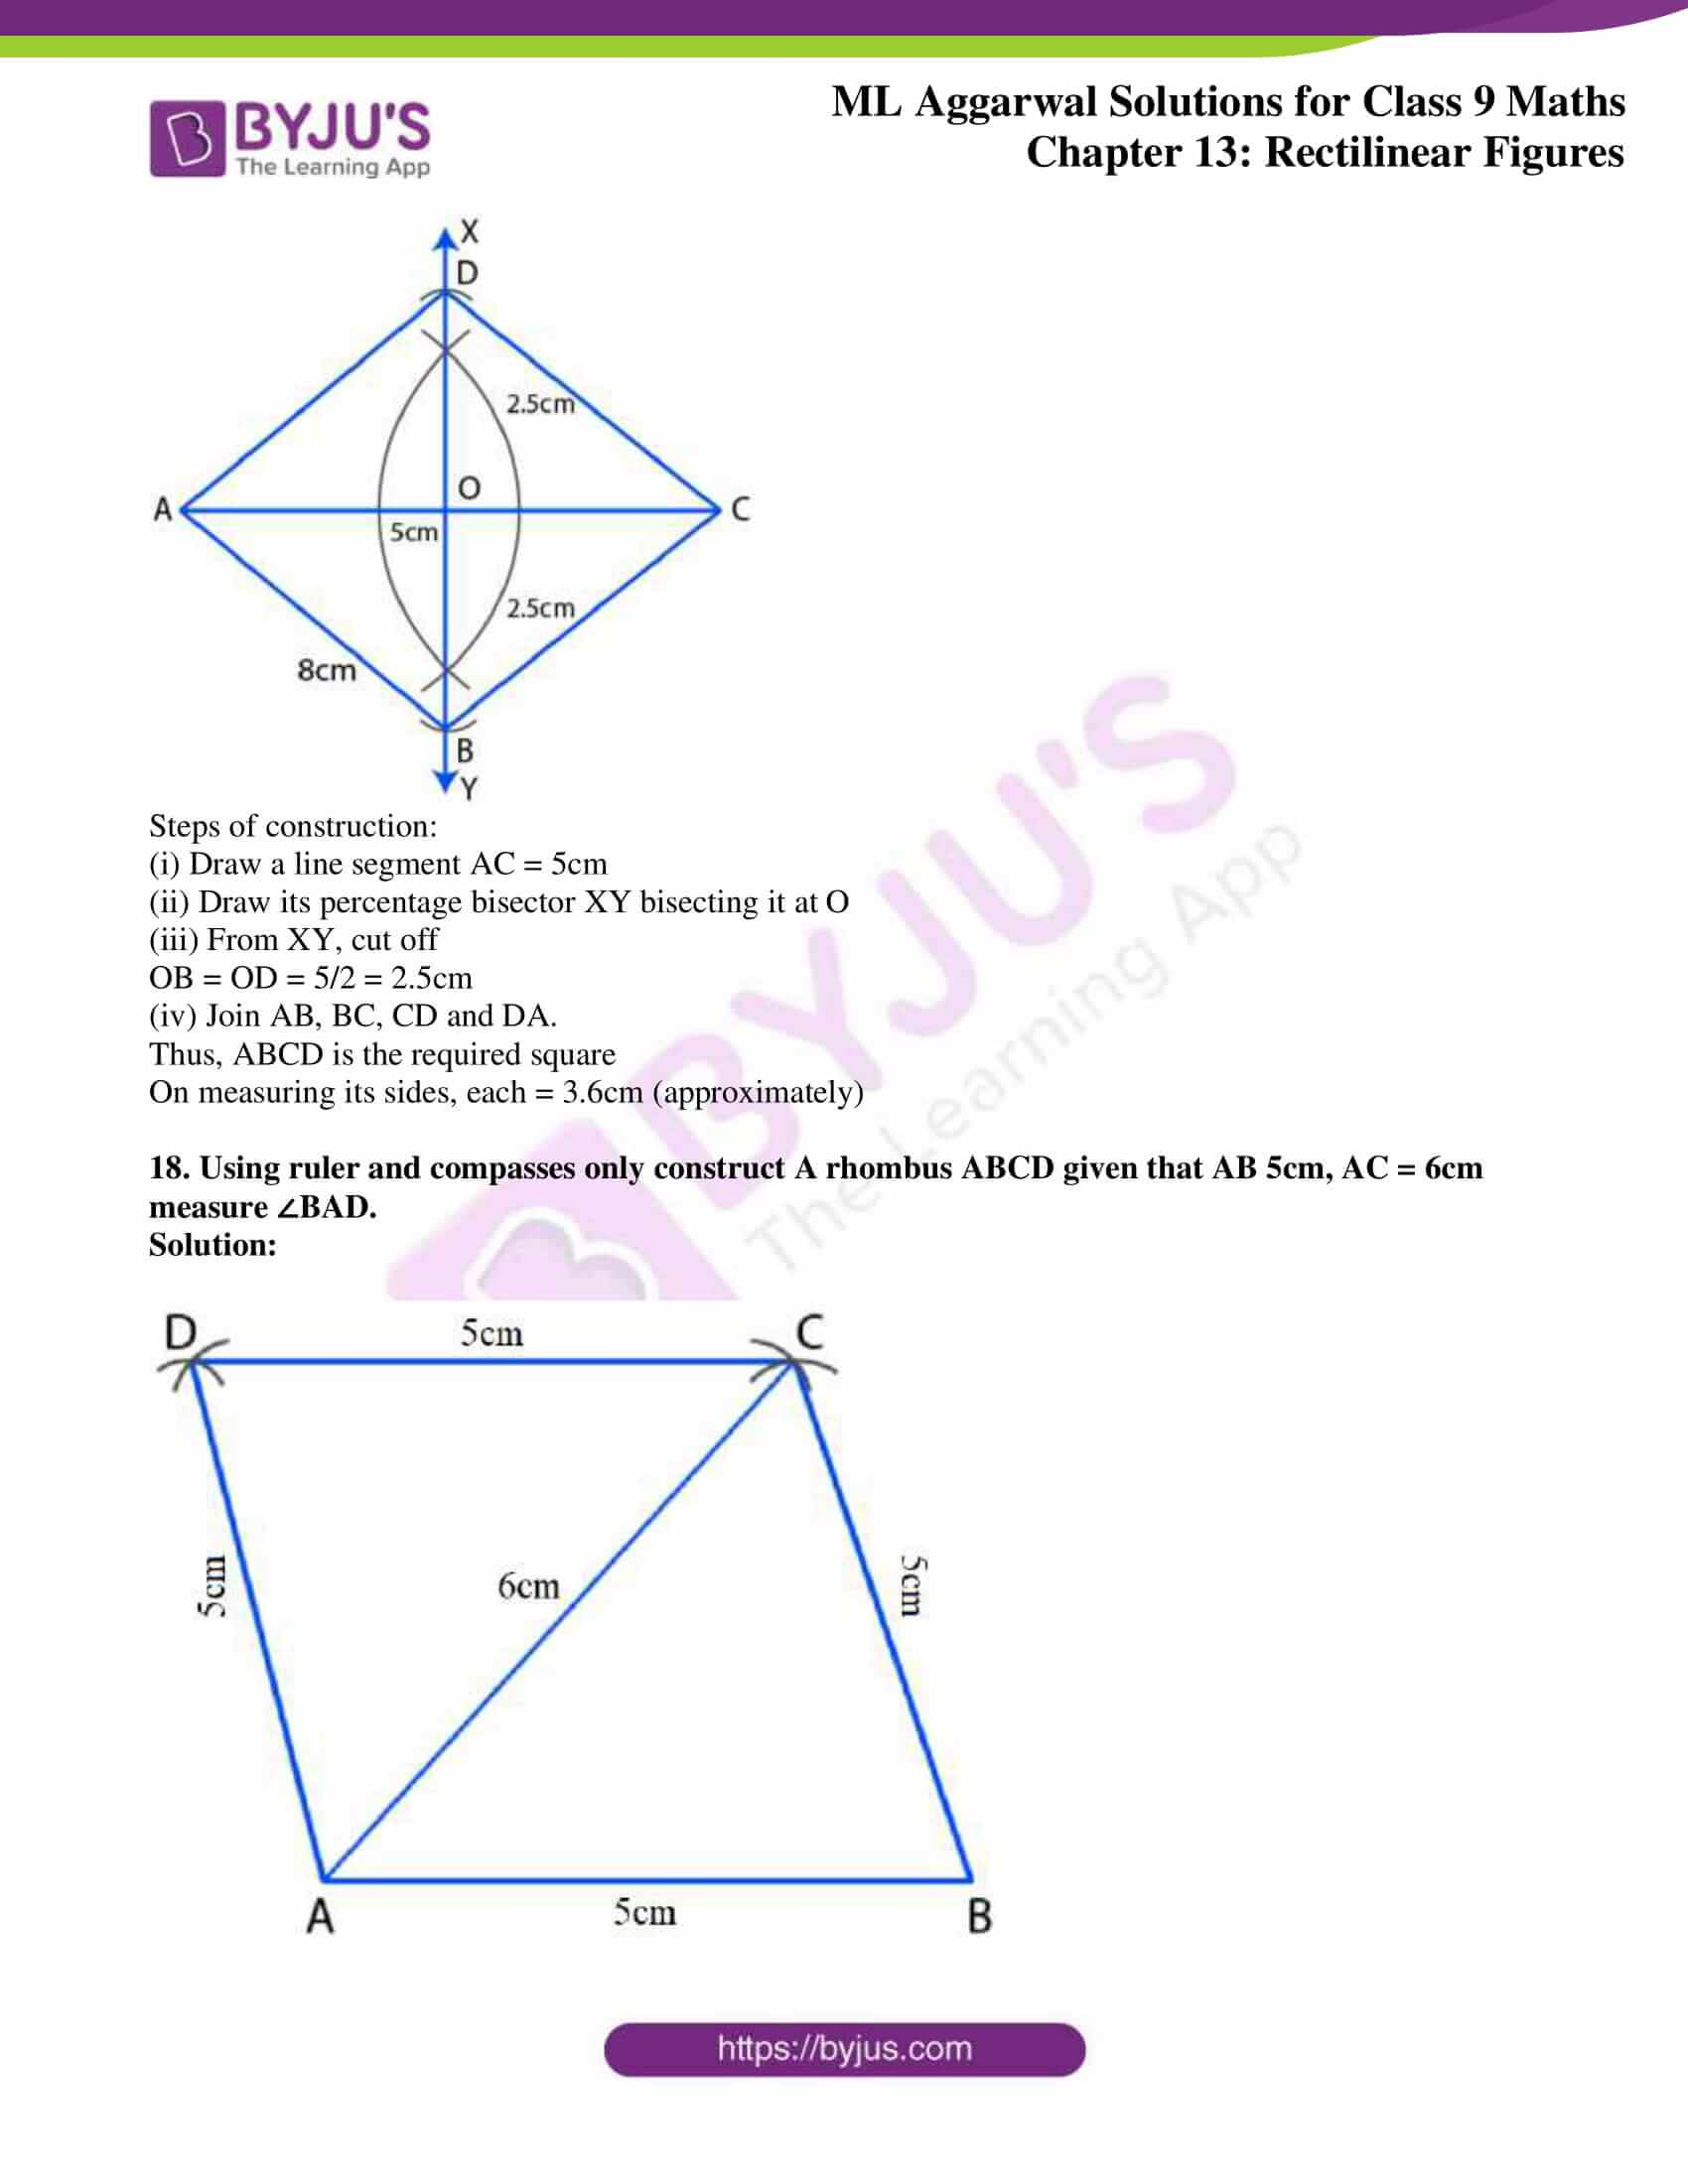 ml aggarwal solutions for class 9 maths chapter 13 34